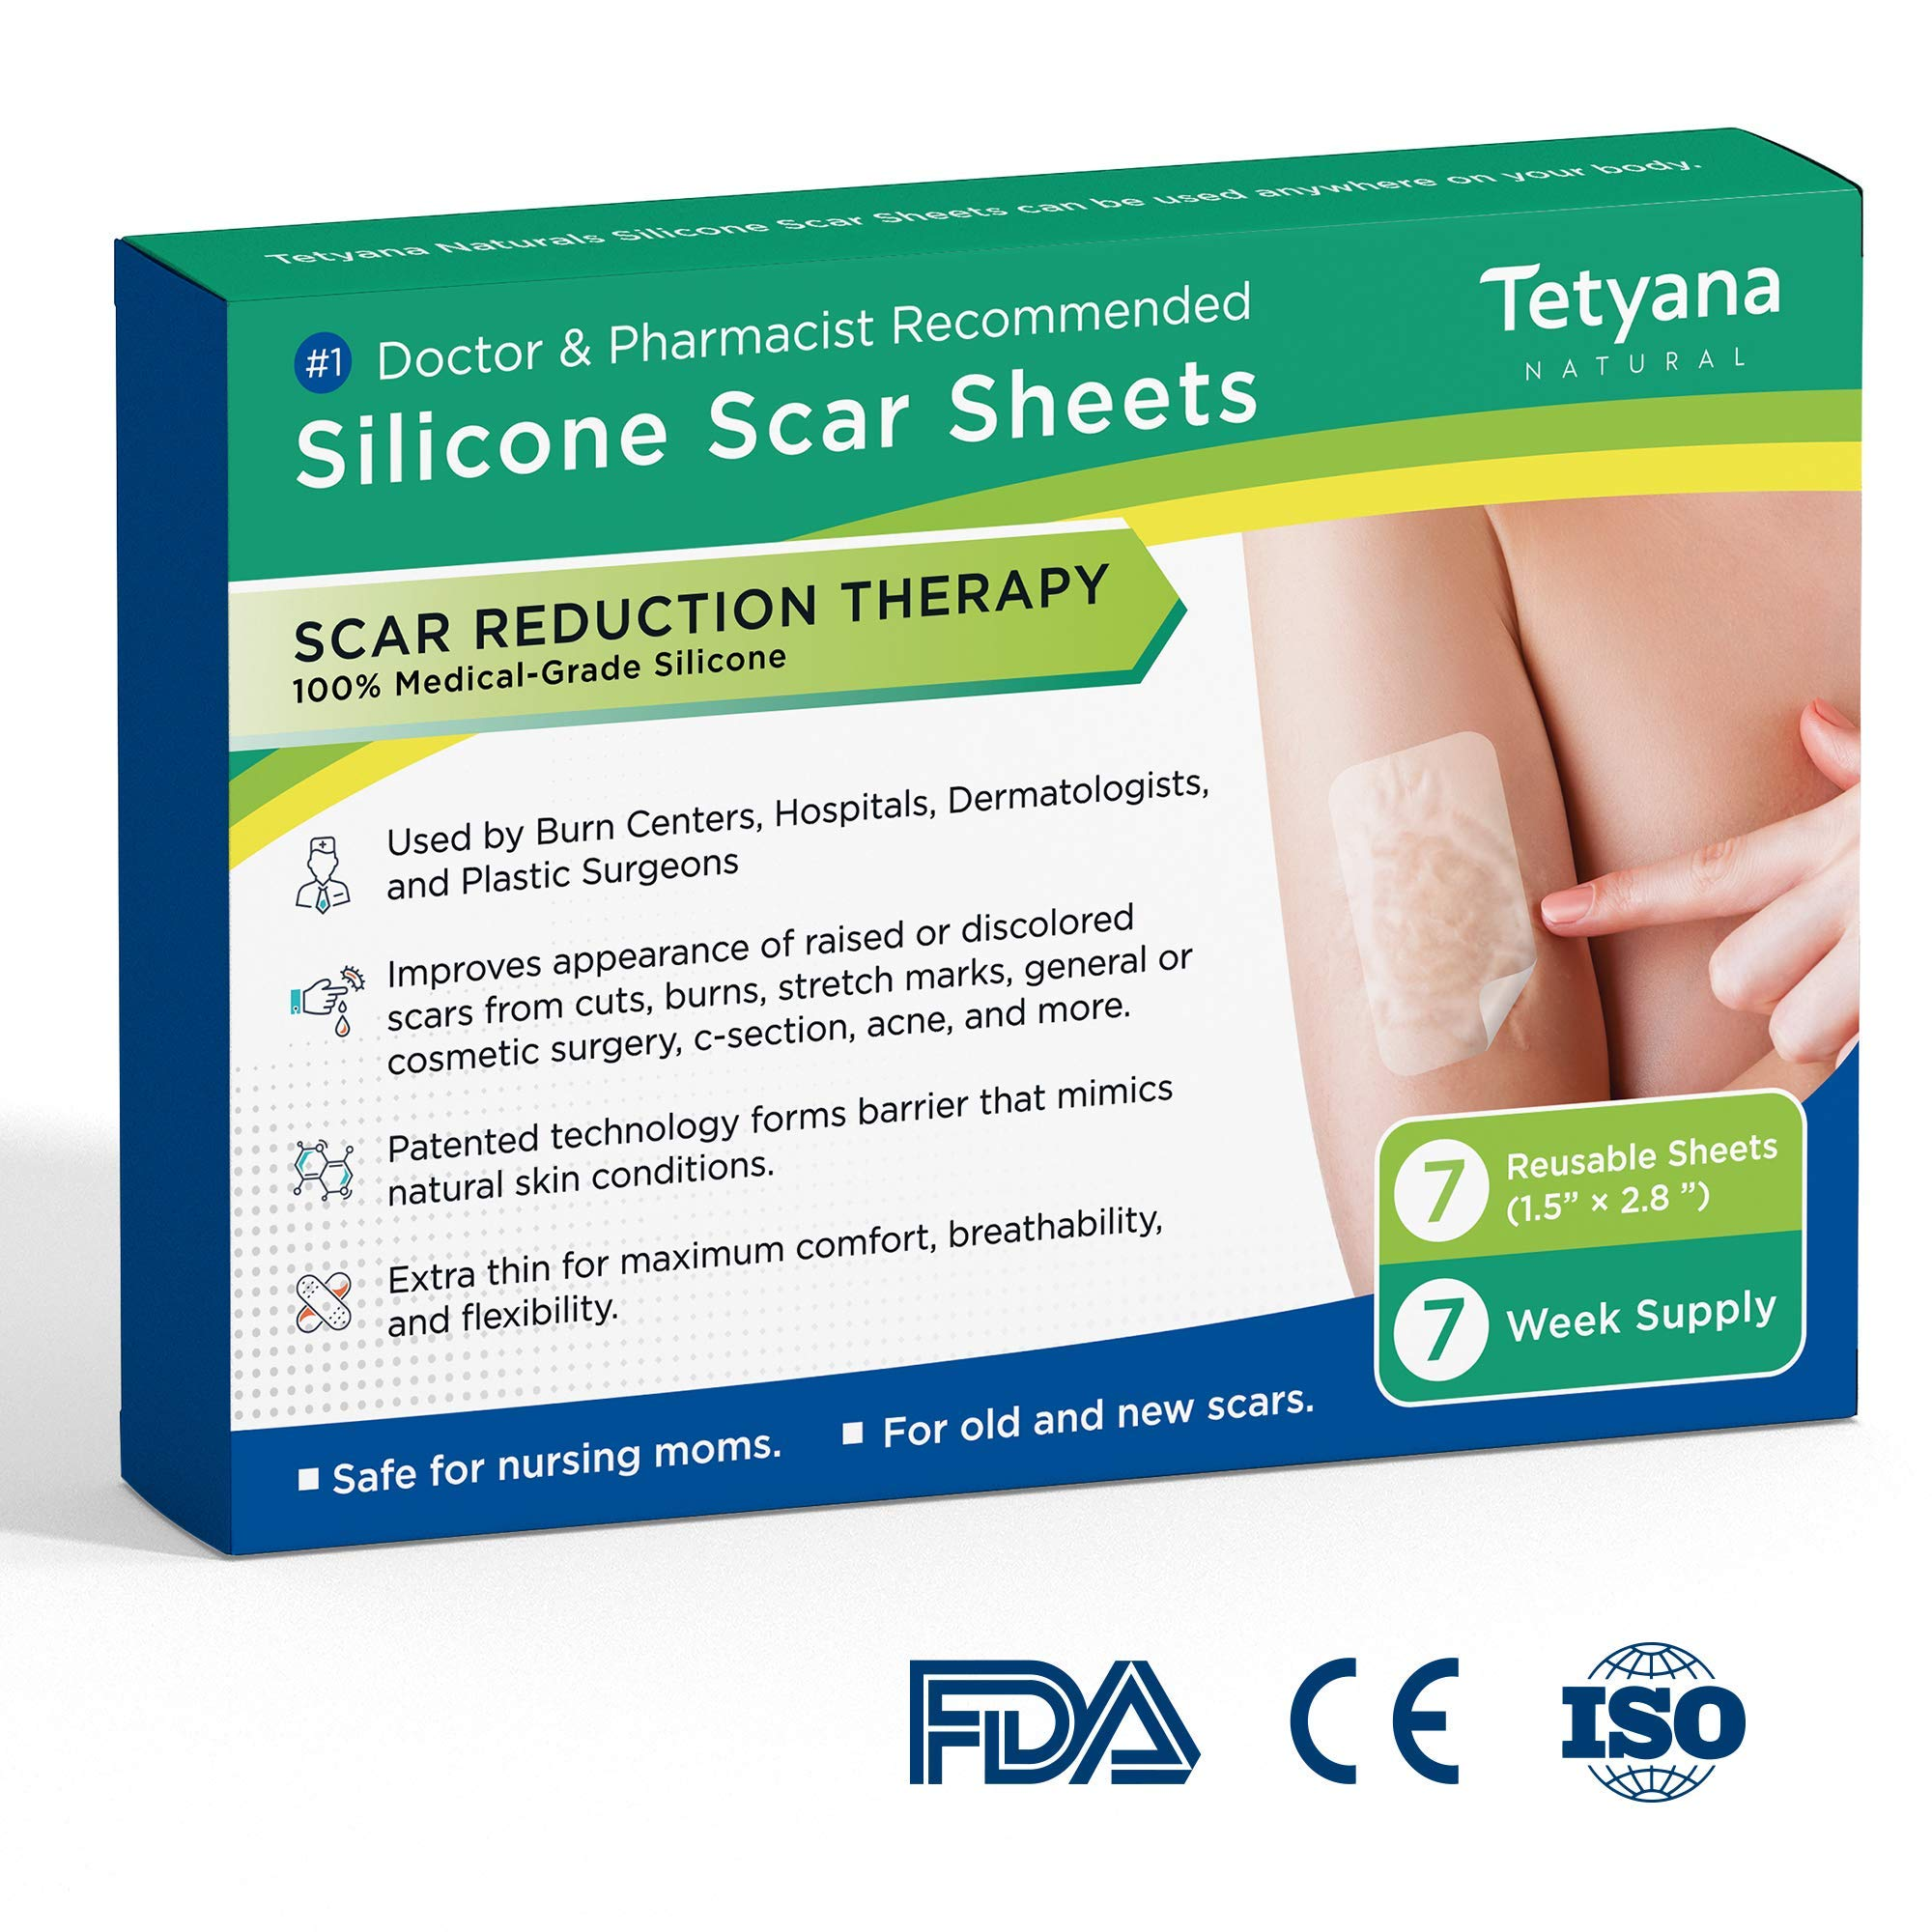 Medical Grade Silicone Scar Removal Sheets by Tatyana Naturals [7Pcs] Reusable, High-Performance Scar Cure for Stretch Marks, Surgery Scars, C-Section Scars, Acne Scars, Cuts and Burns by Tetyana naturals